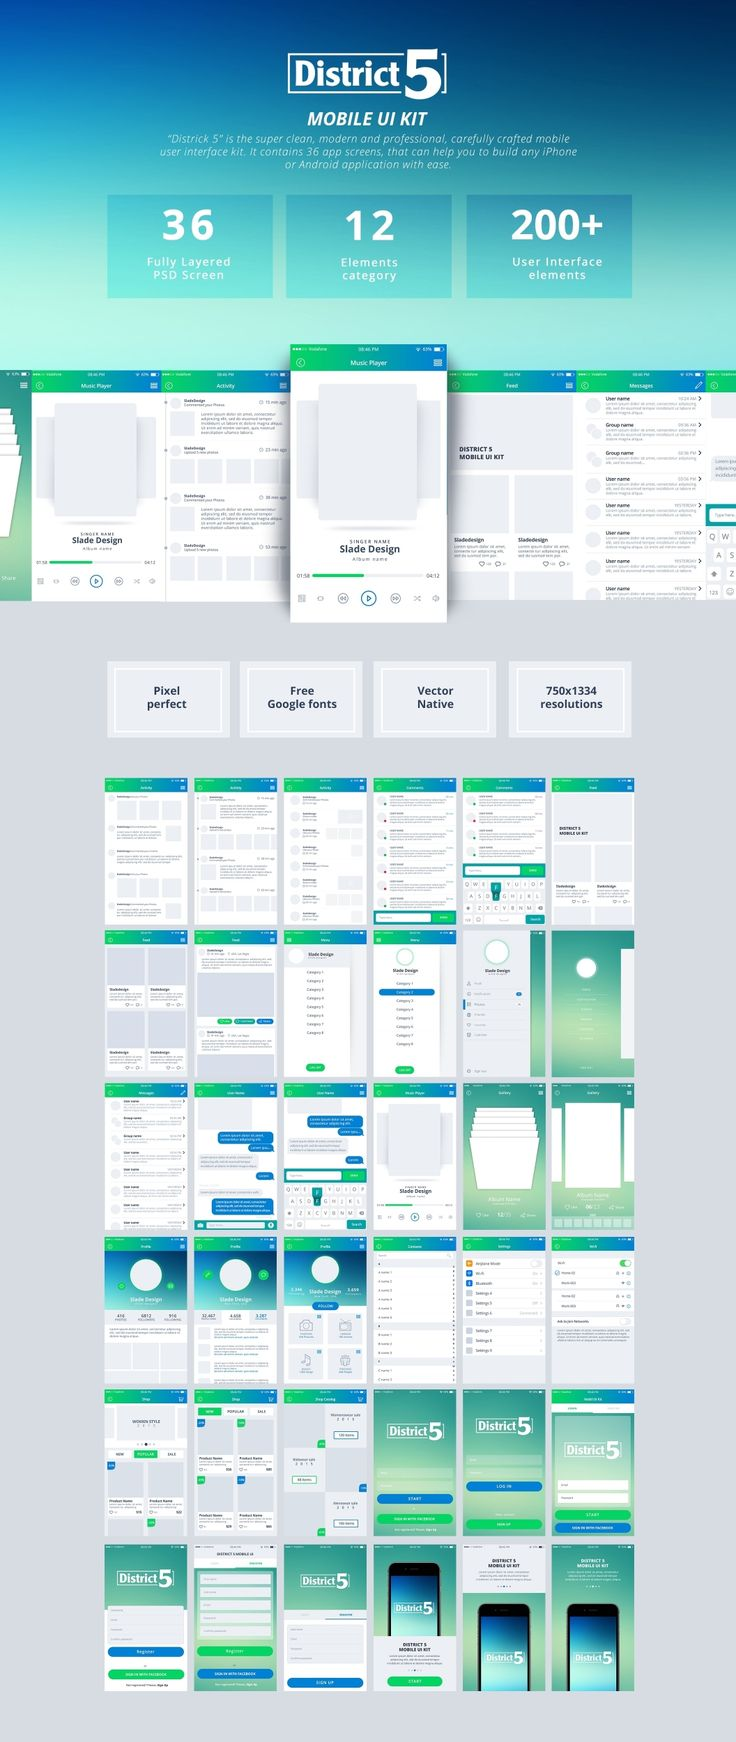 101 best UI design images on Pinterest | Interface design, User ...